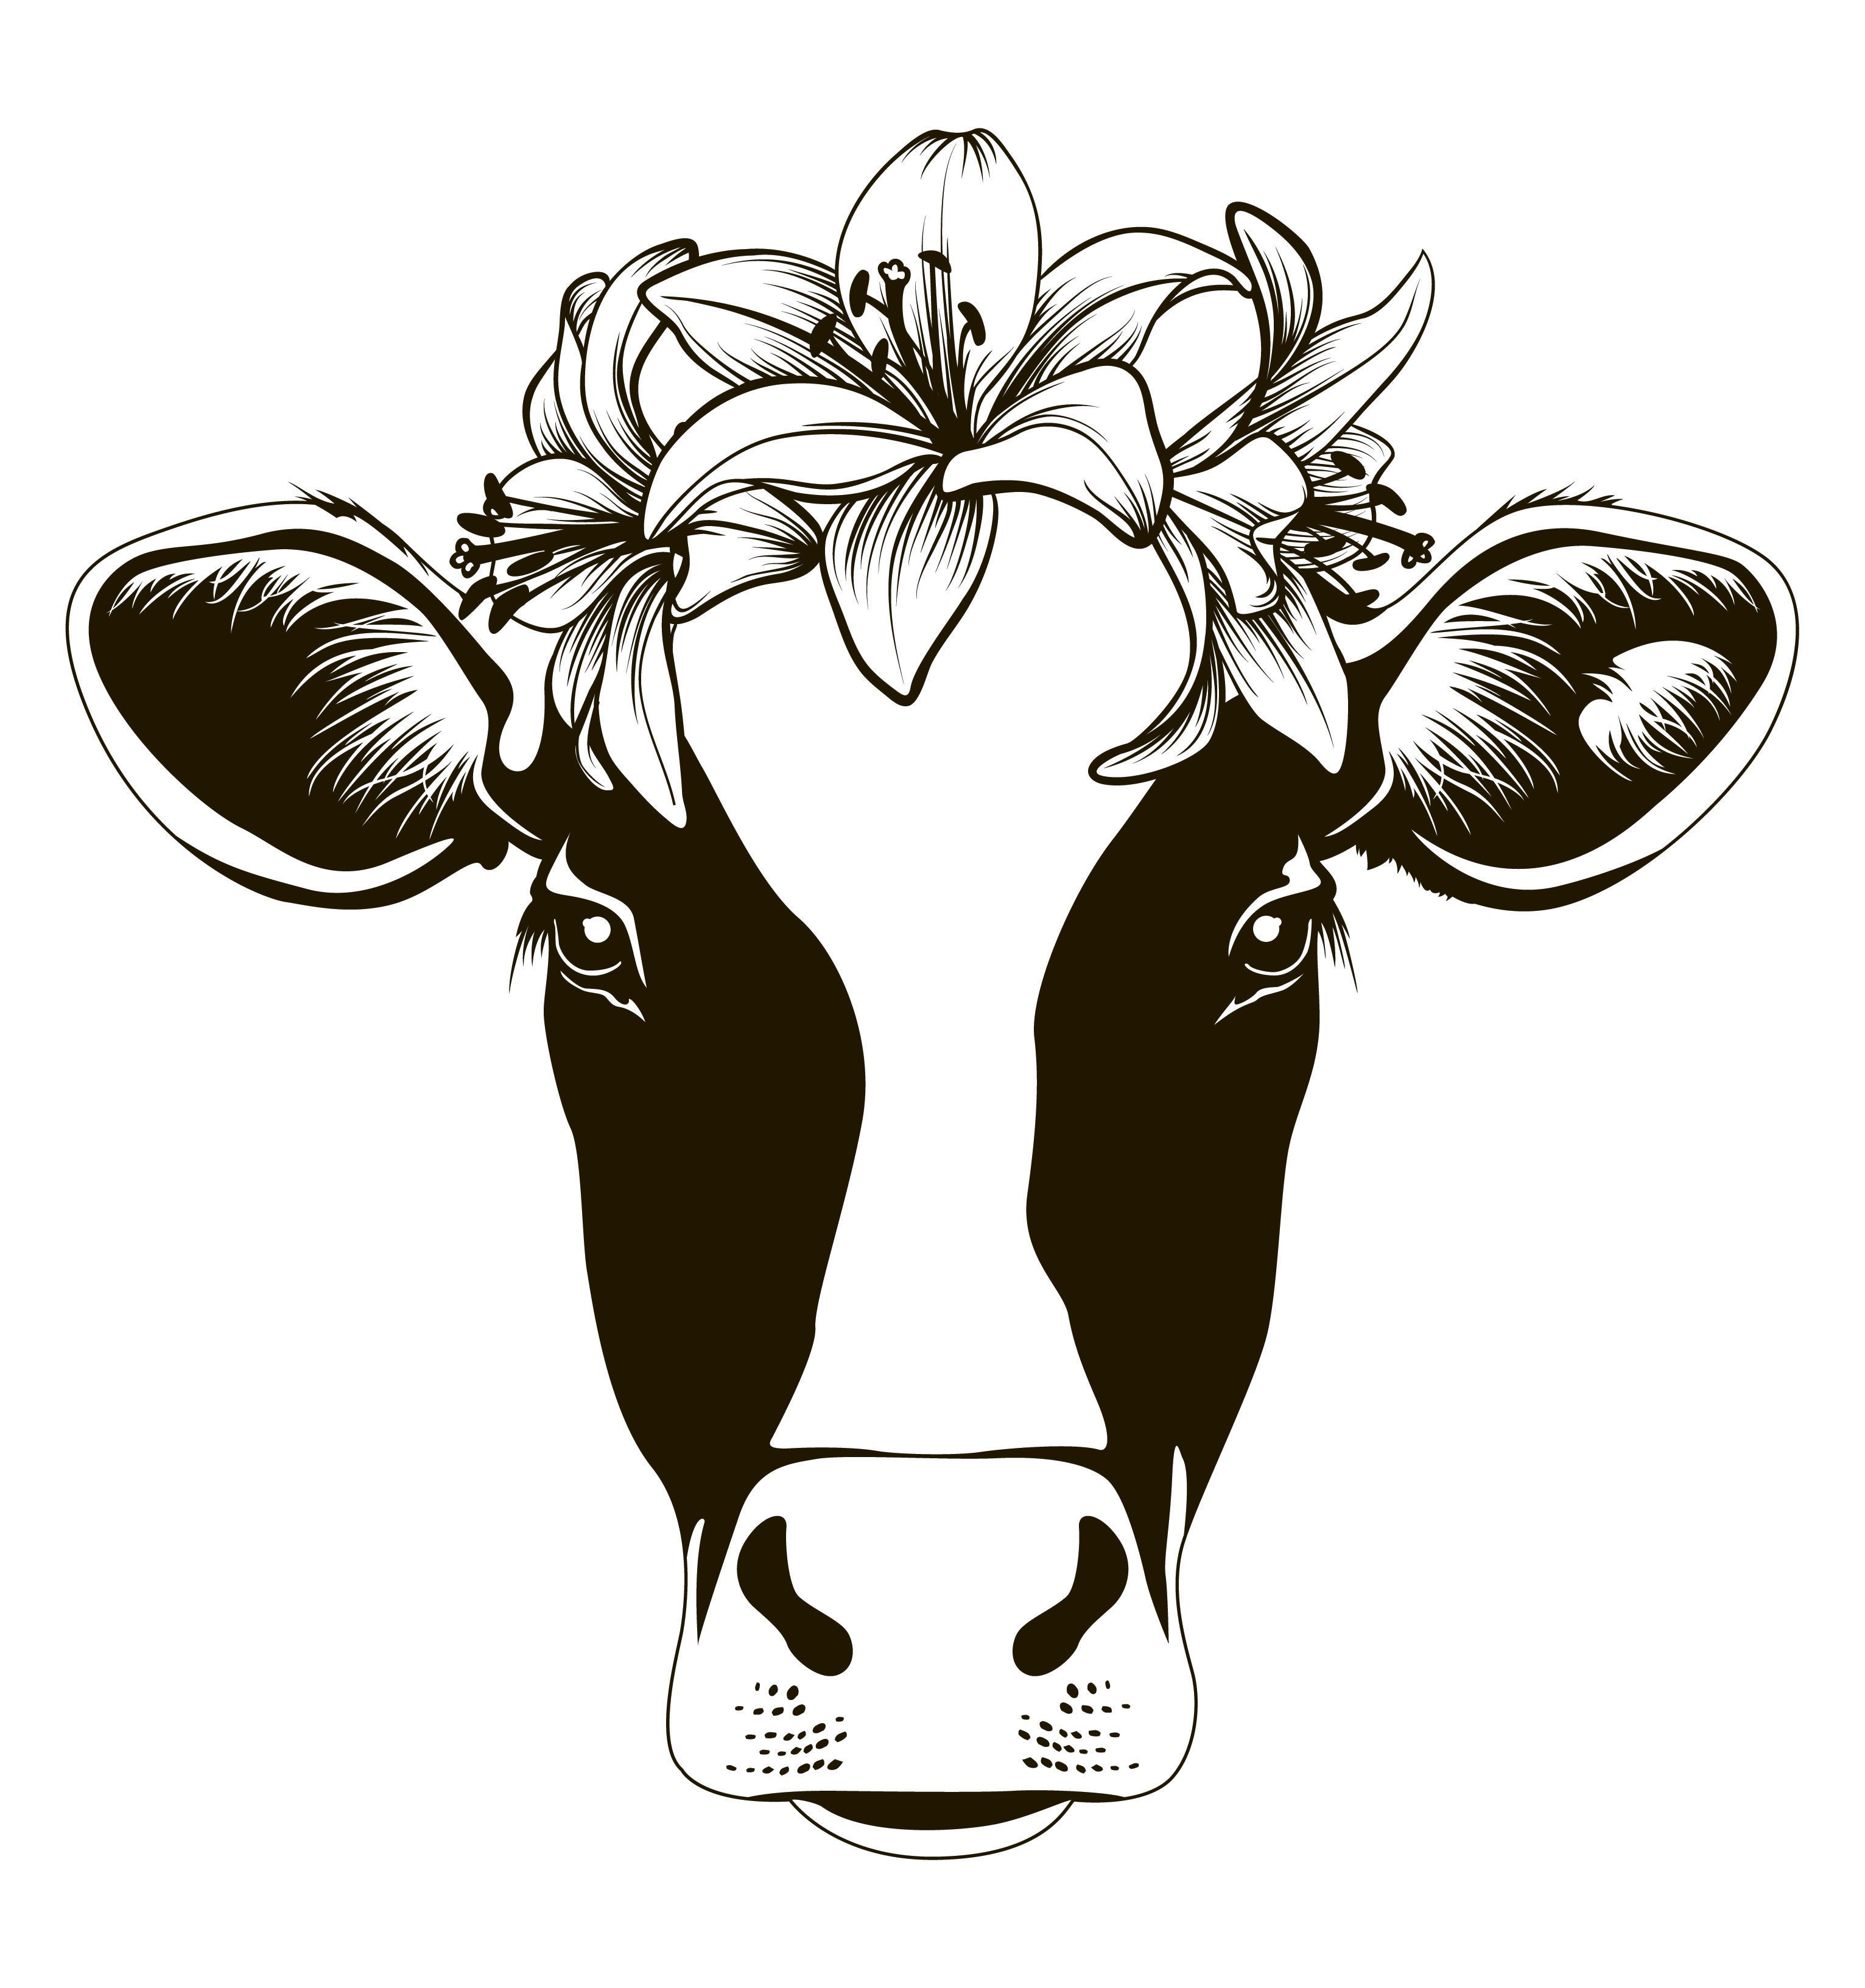 Cow face svg, cow head svg, cow with flowers svg, cute cow